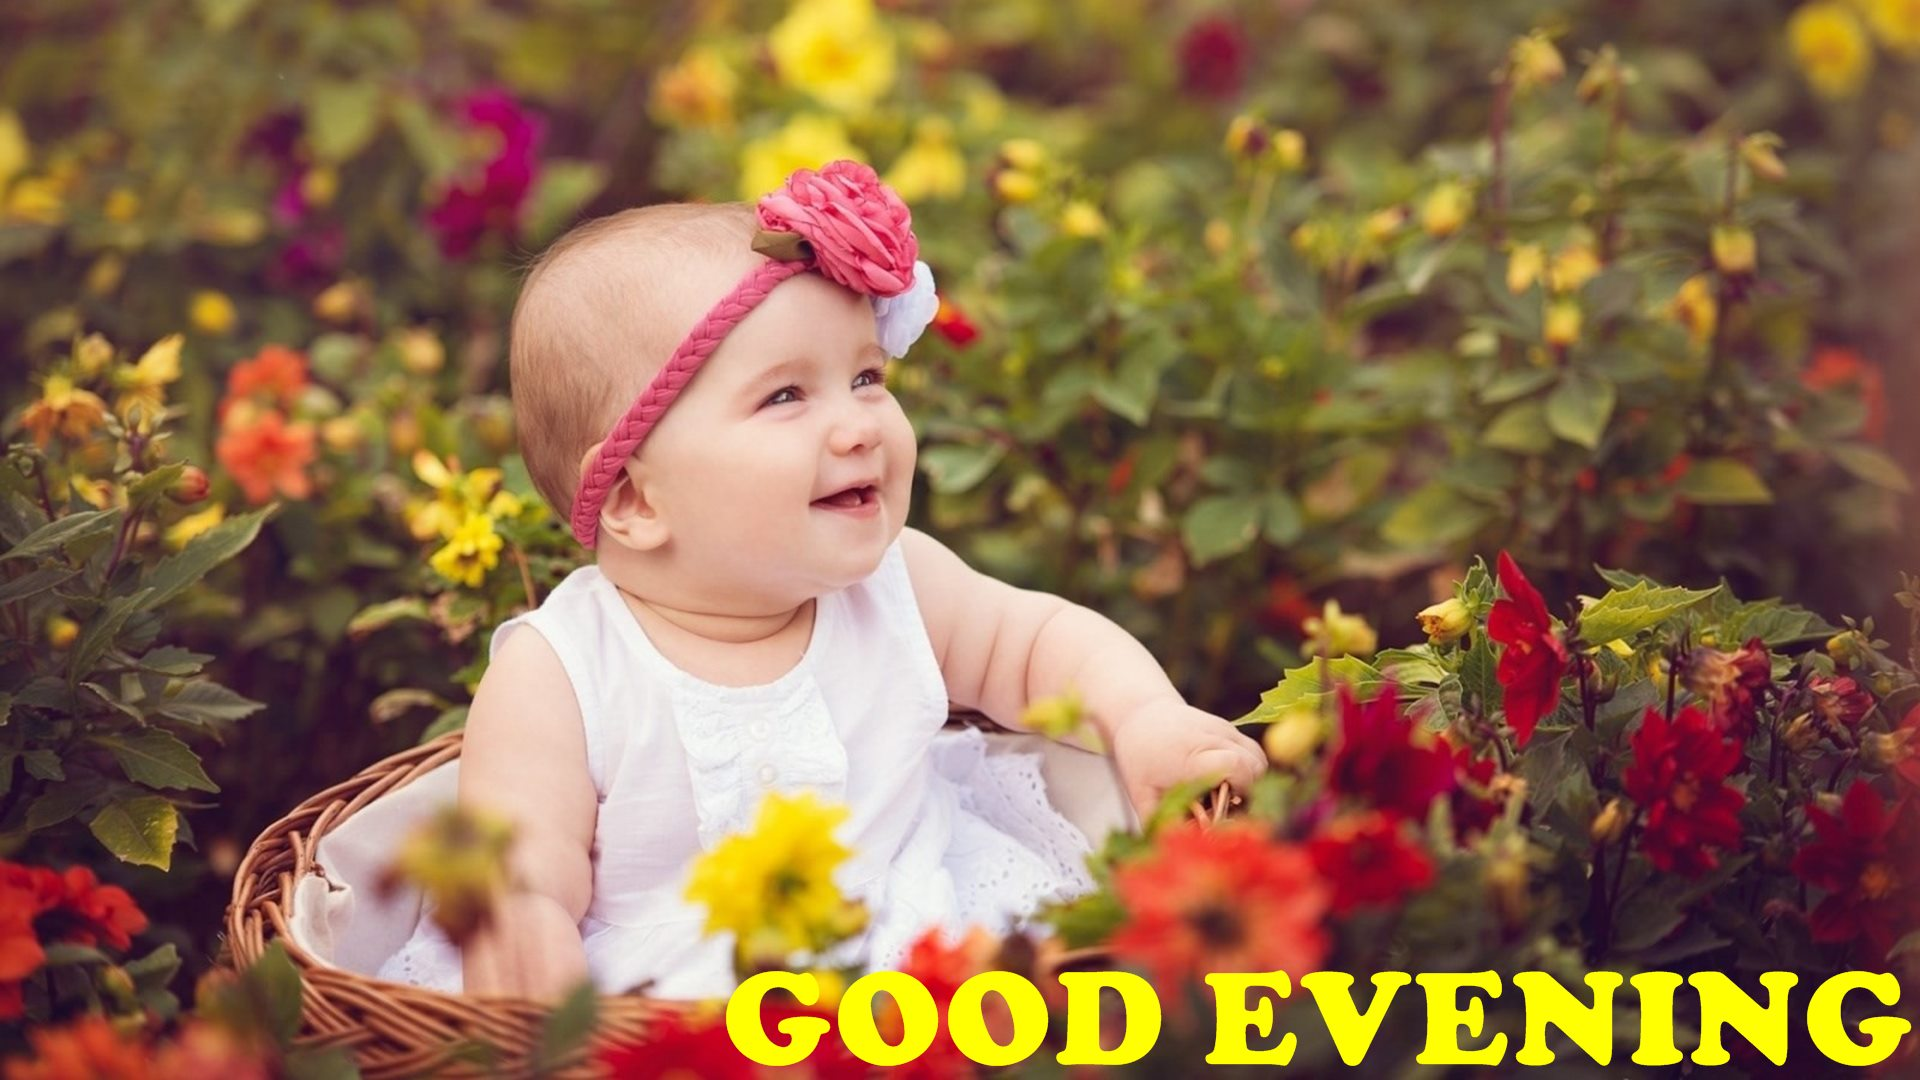 Good Evening Wth Cute Baby Girl And Flowers Hd Wallpaper - Baby Whatsapp Dp For Girl , HD Wallpaper & Backgrounds